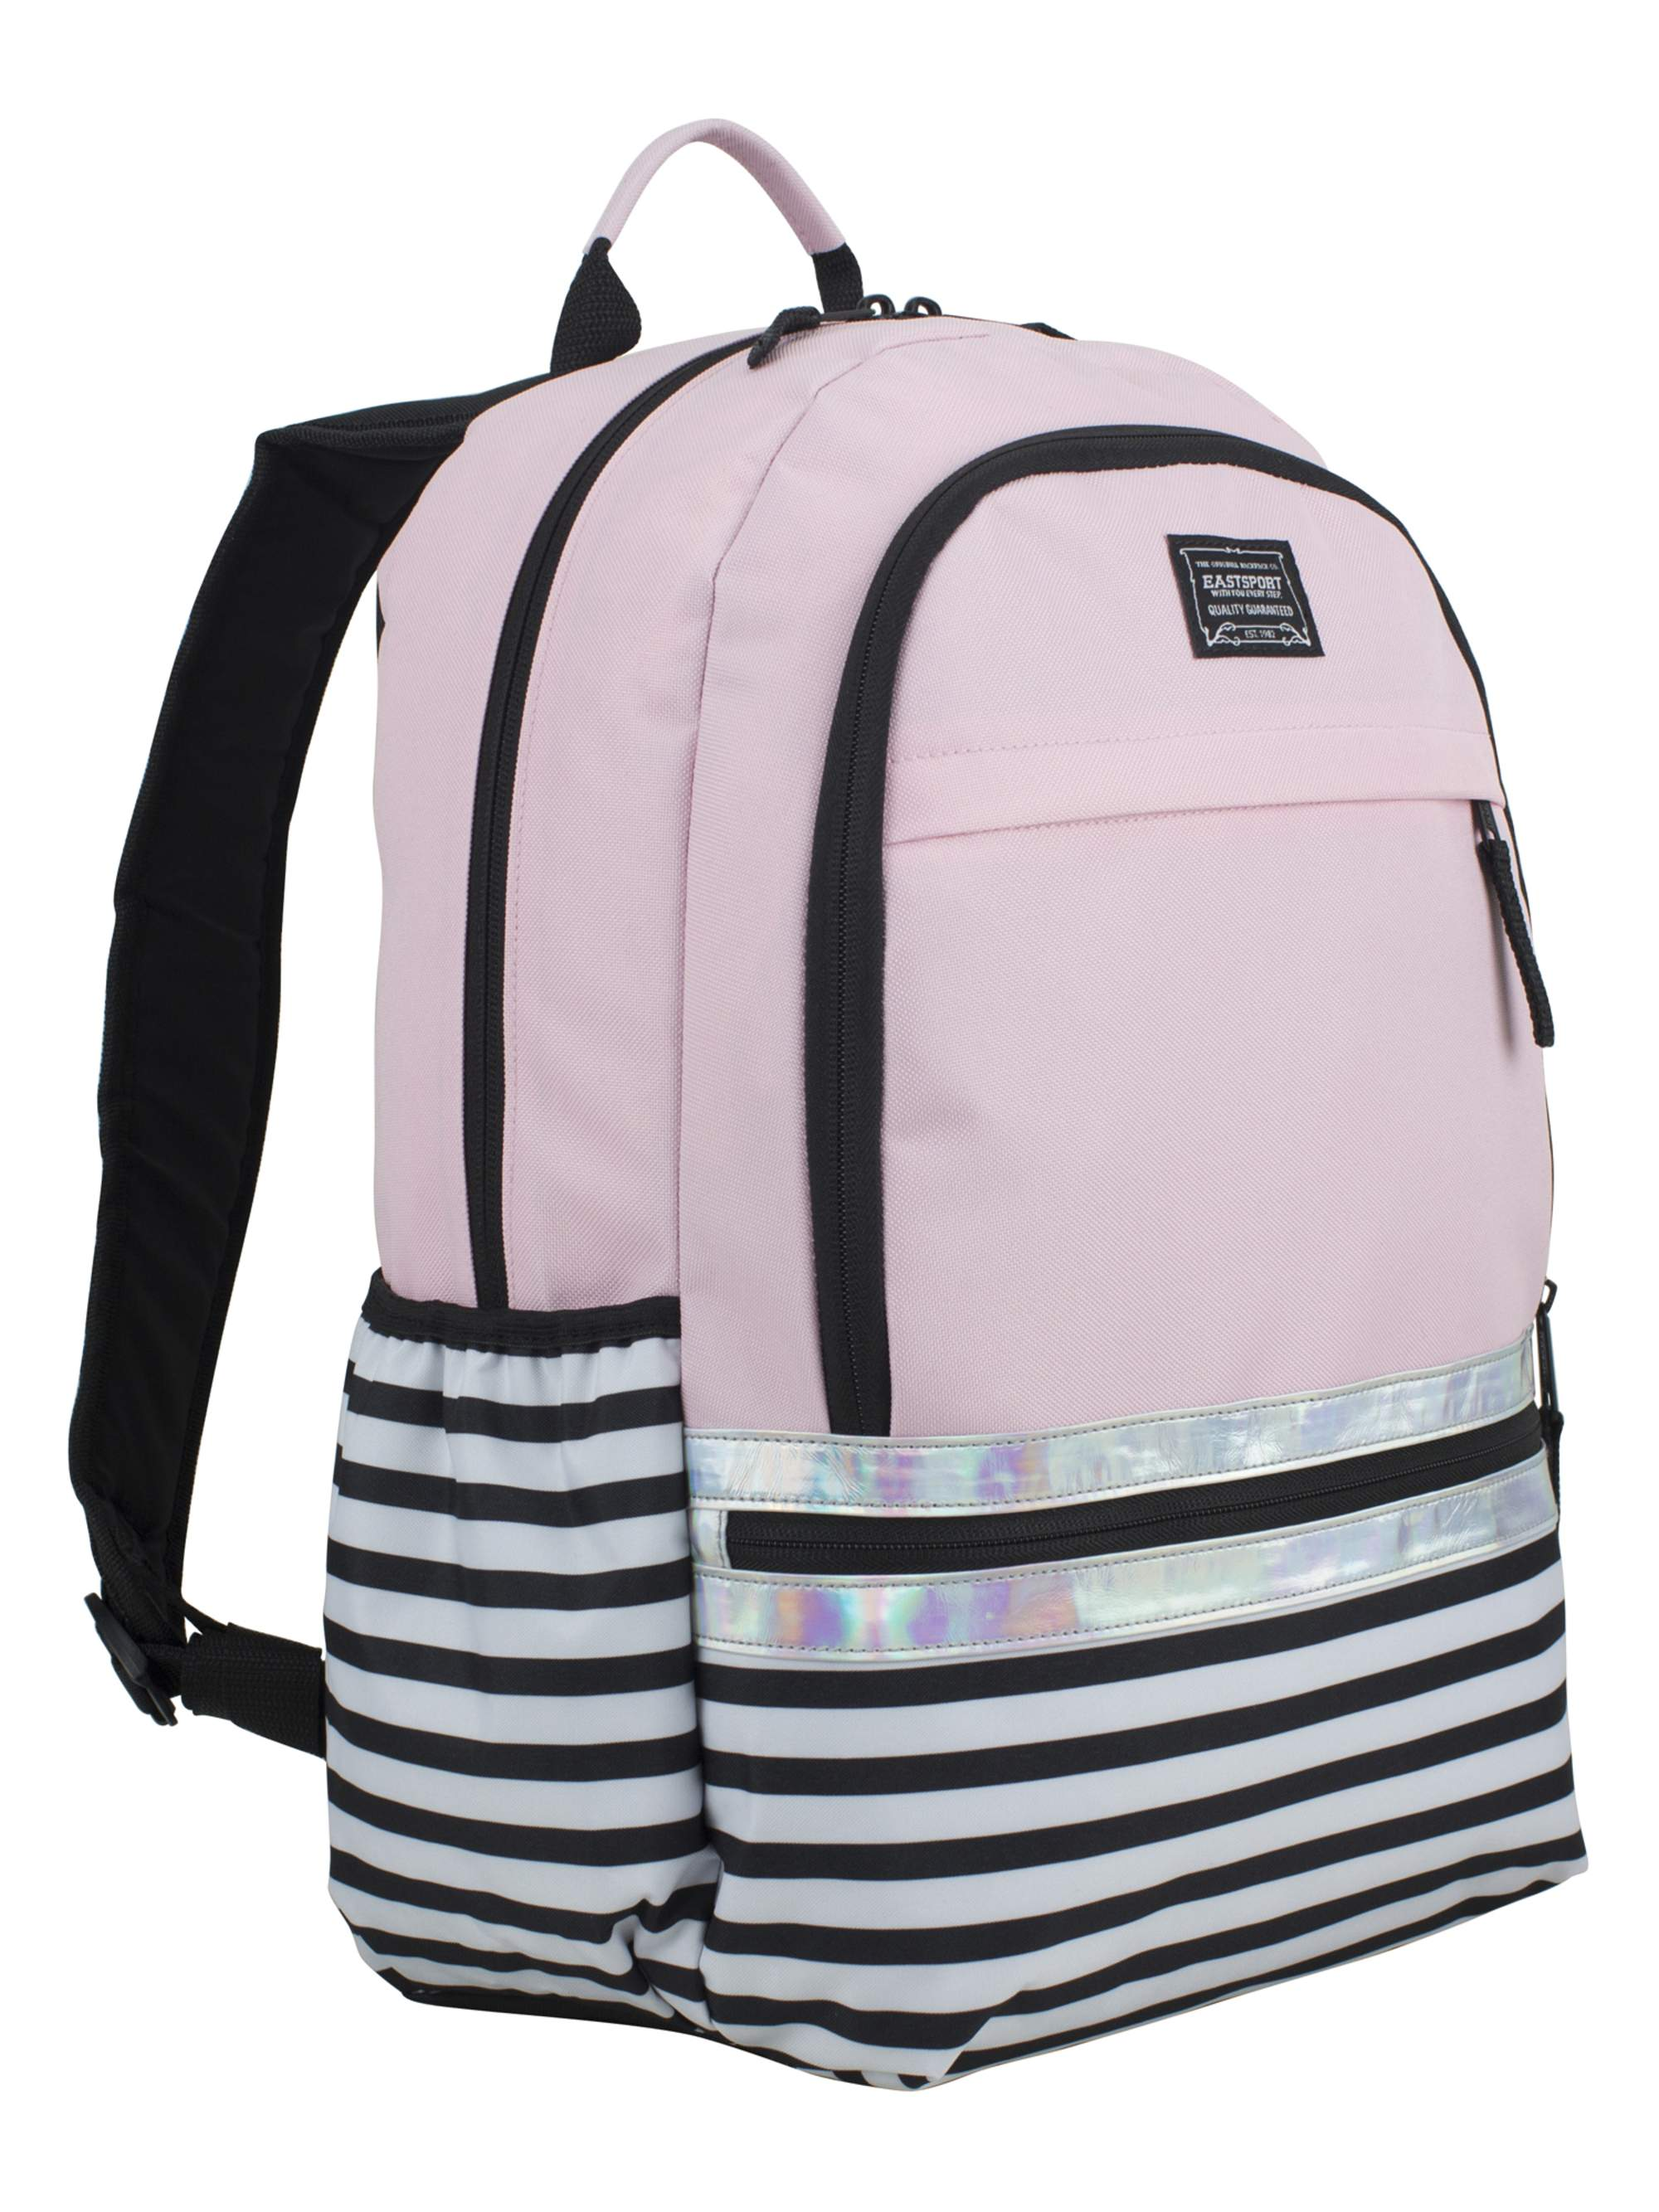 Eastsport Mya Girl's Student Backpack with Secure Laptop Sleeve by Bijoux International